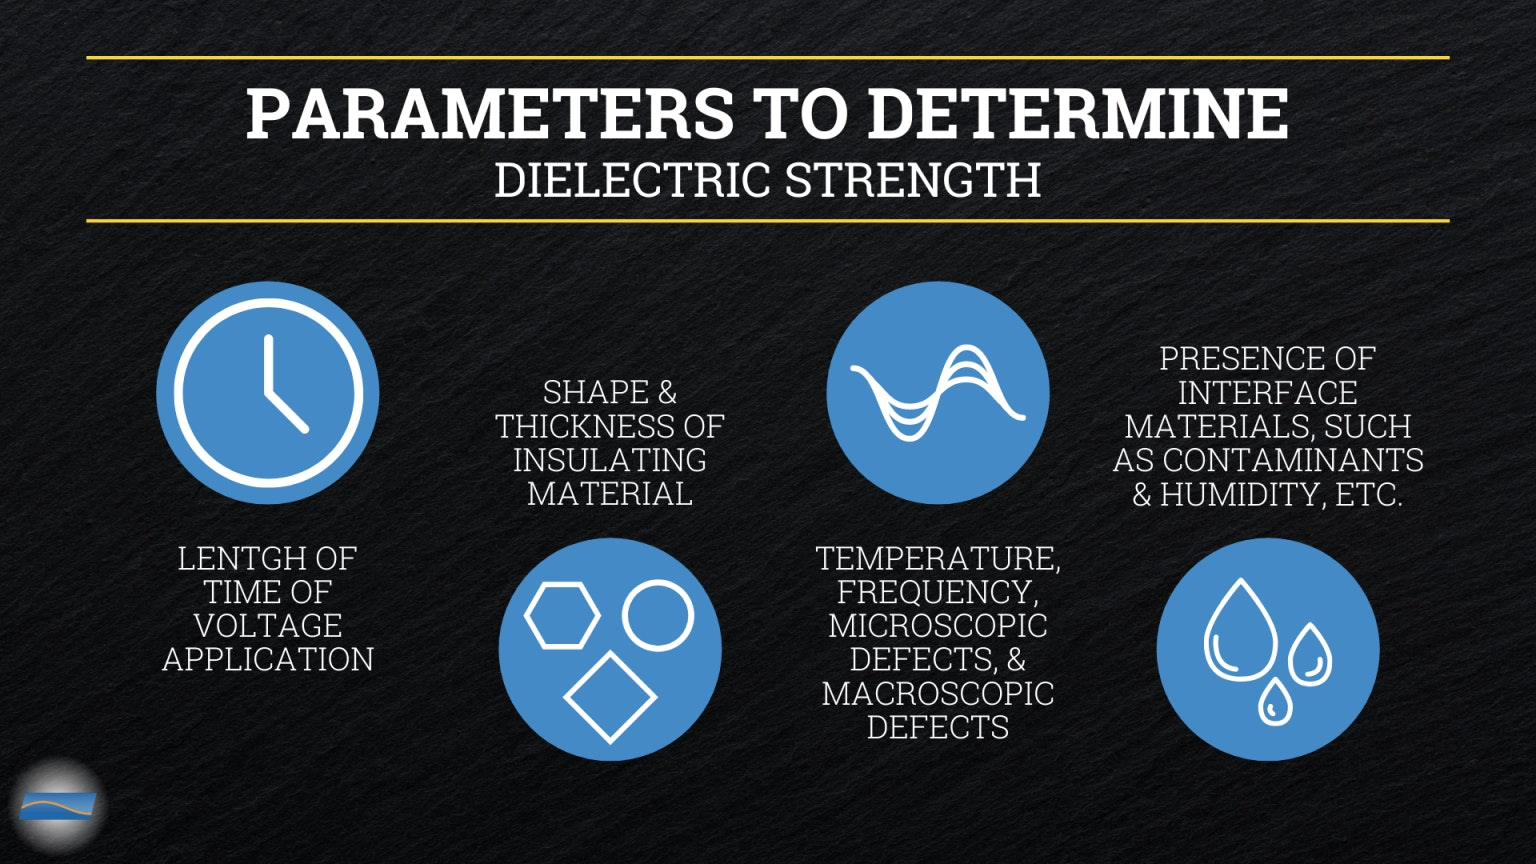 Parameters To Determine Dielectric Strength 1536x864